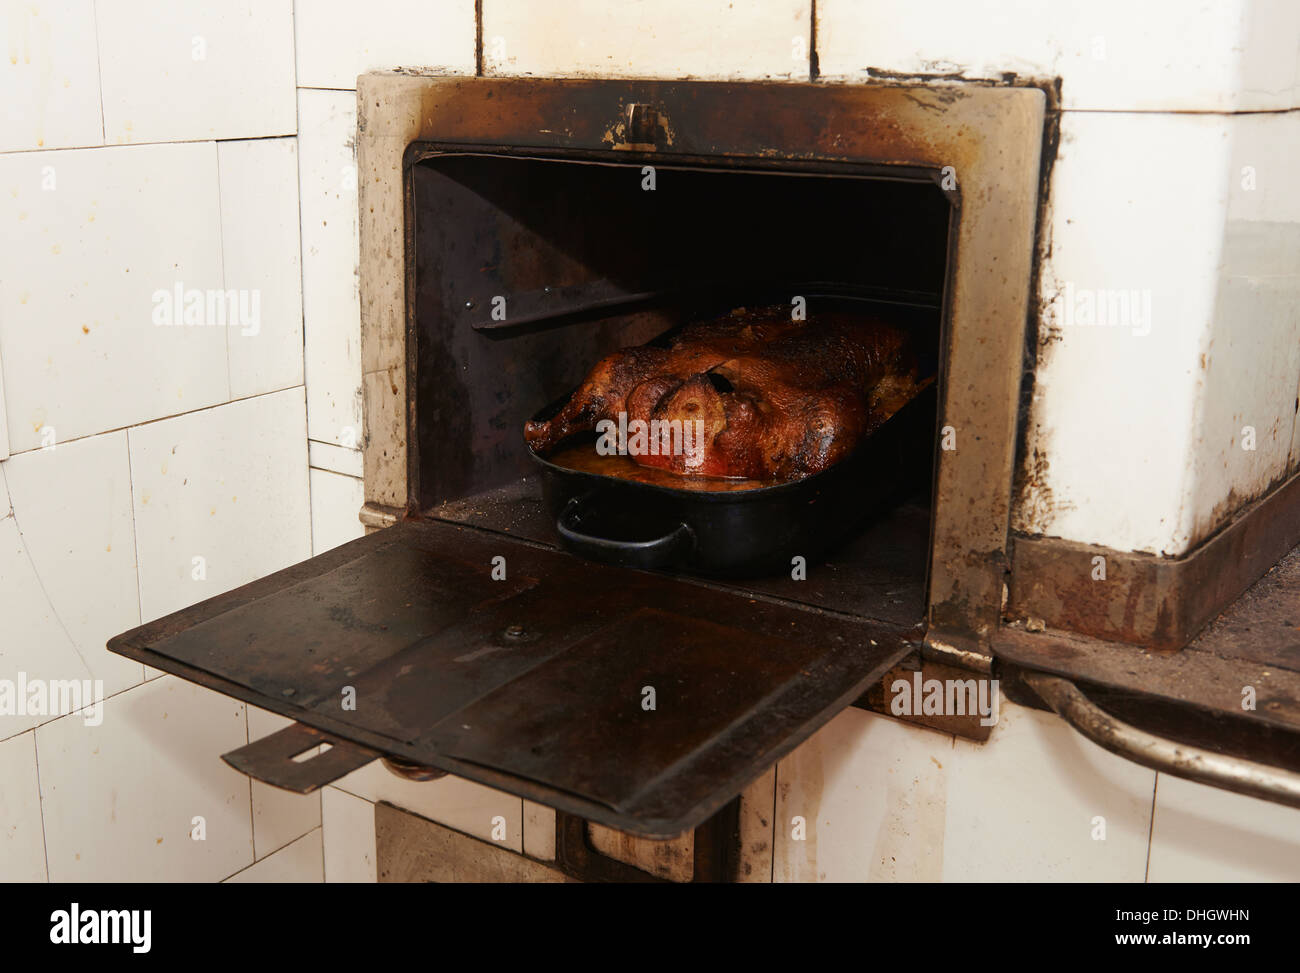 Stuffed duck in frying pan in old stove - Stock Image